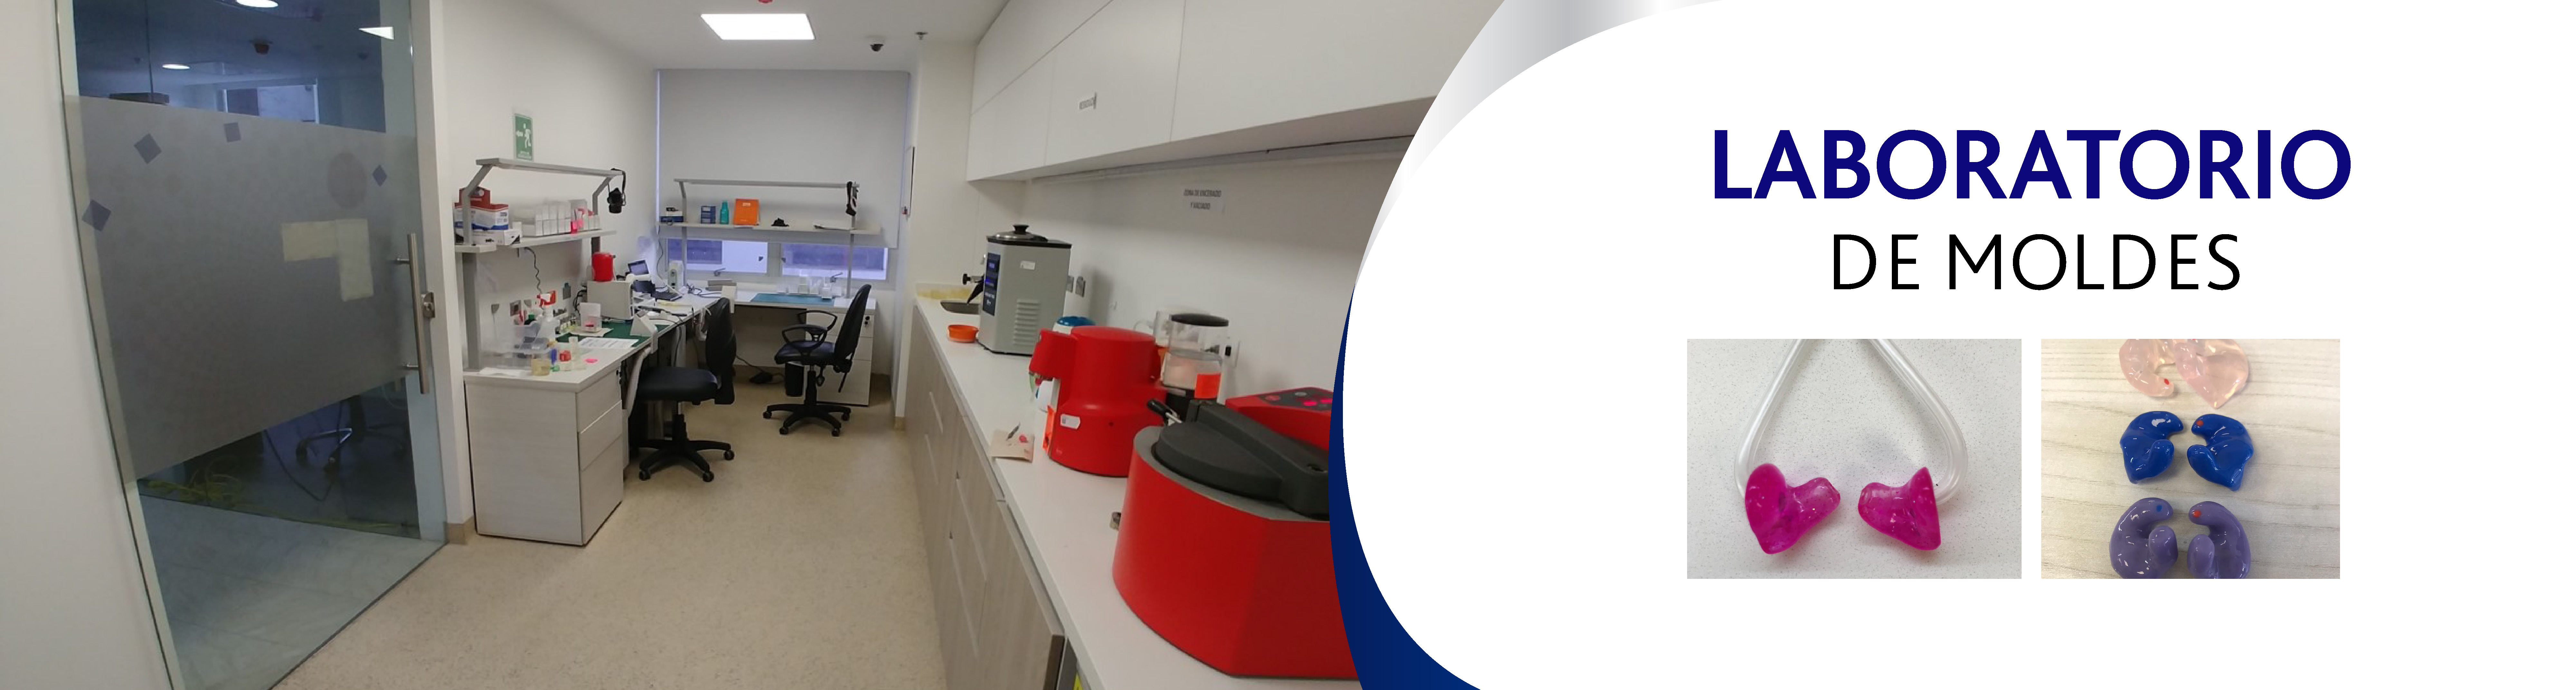 BANNER-LABS-02